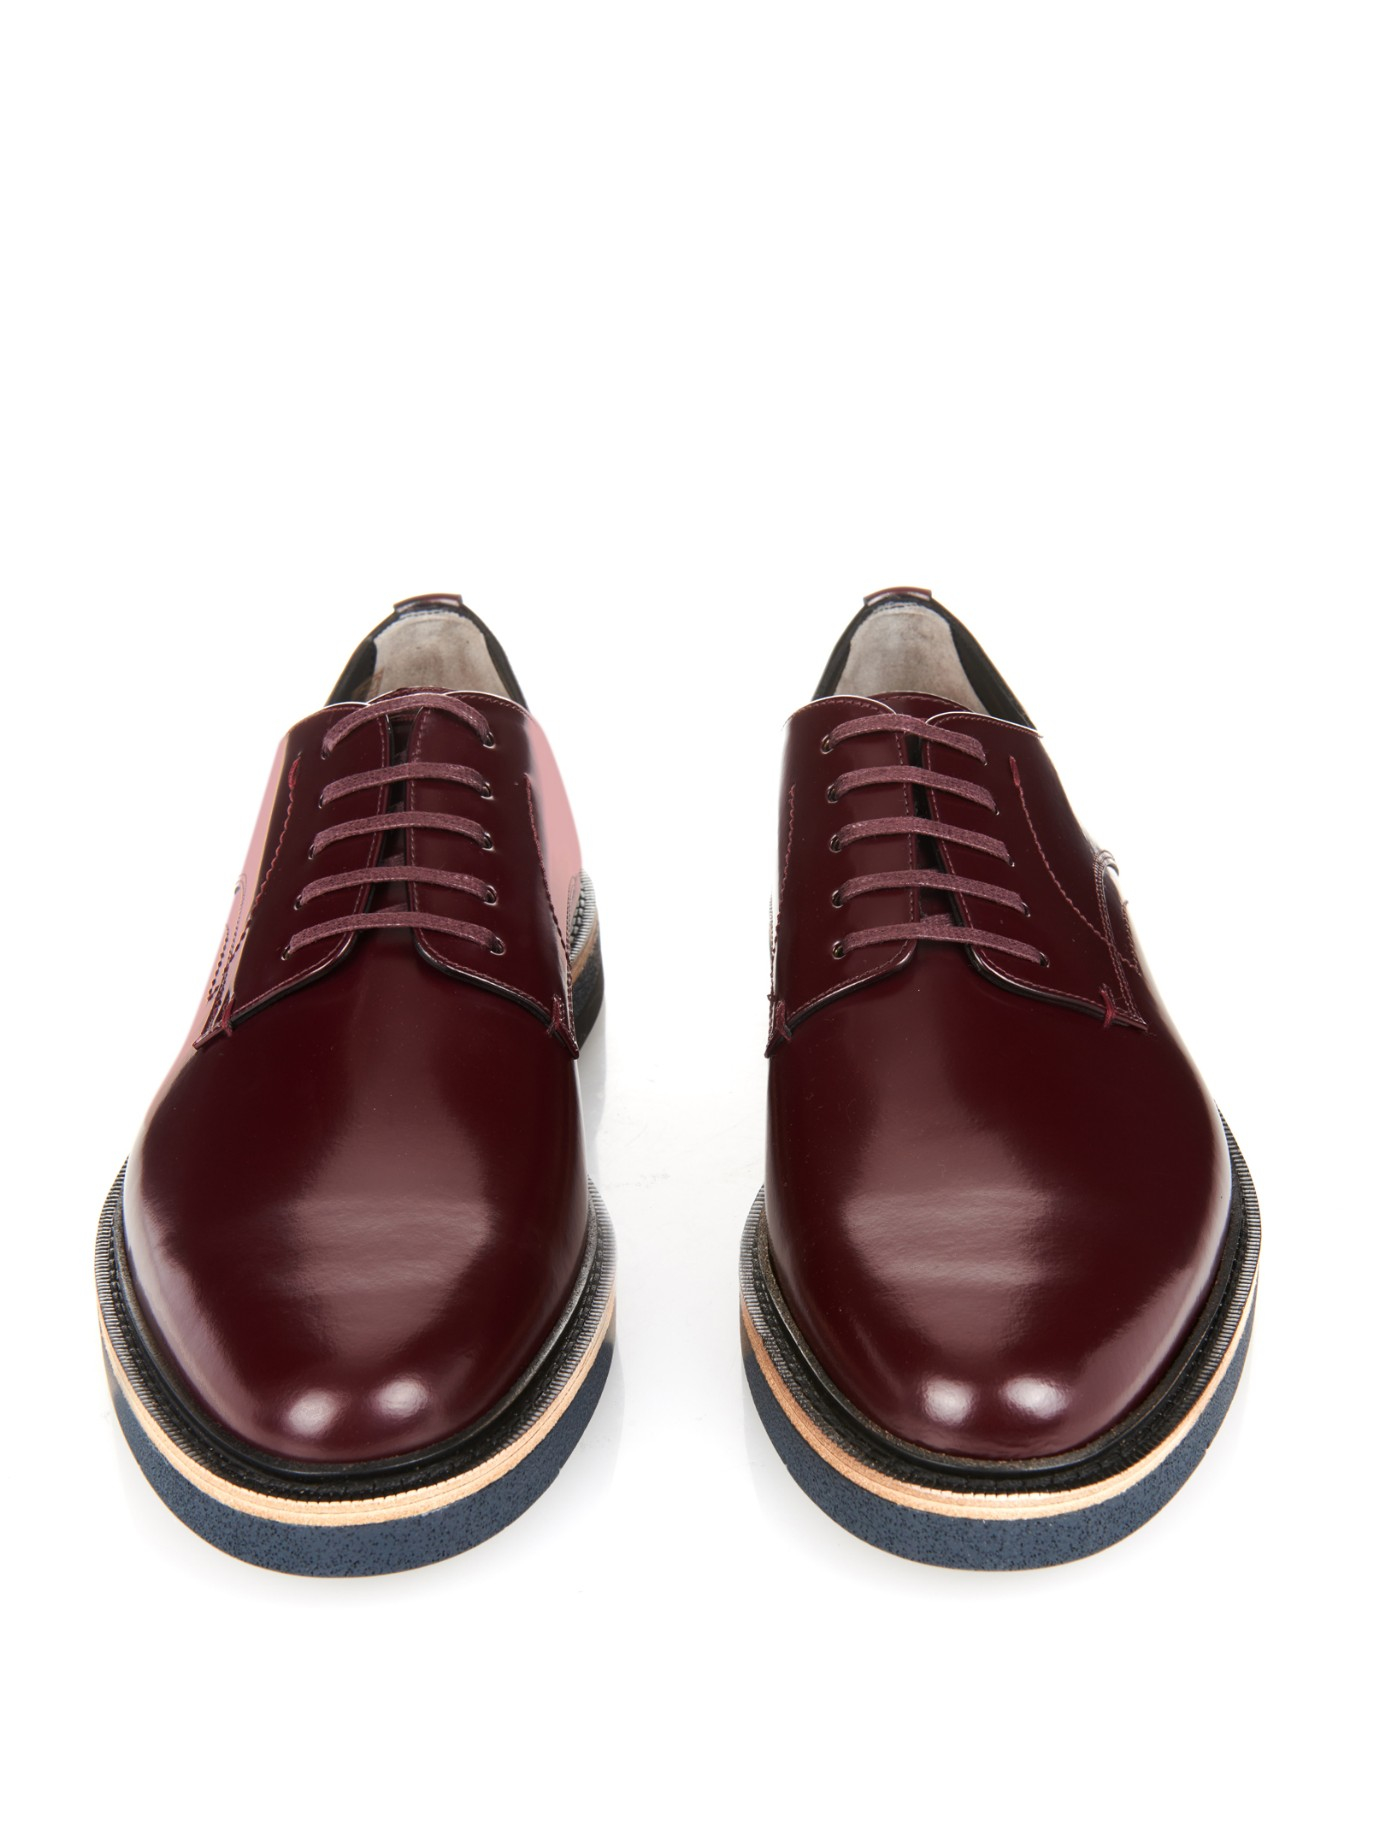 Lyst Fendi Lace Up Leather Derby Shoes In Purple For Men